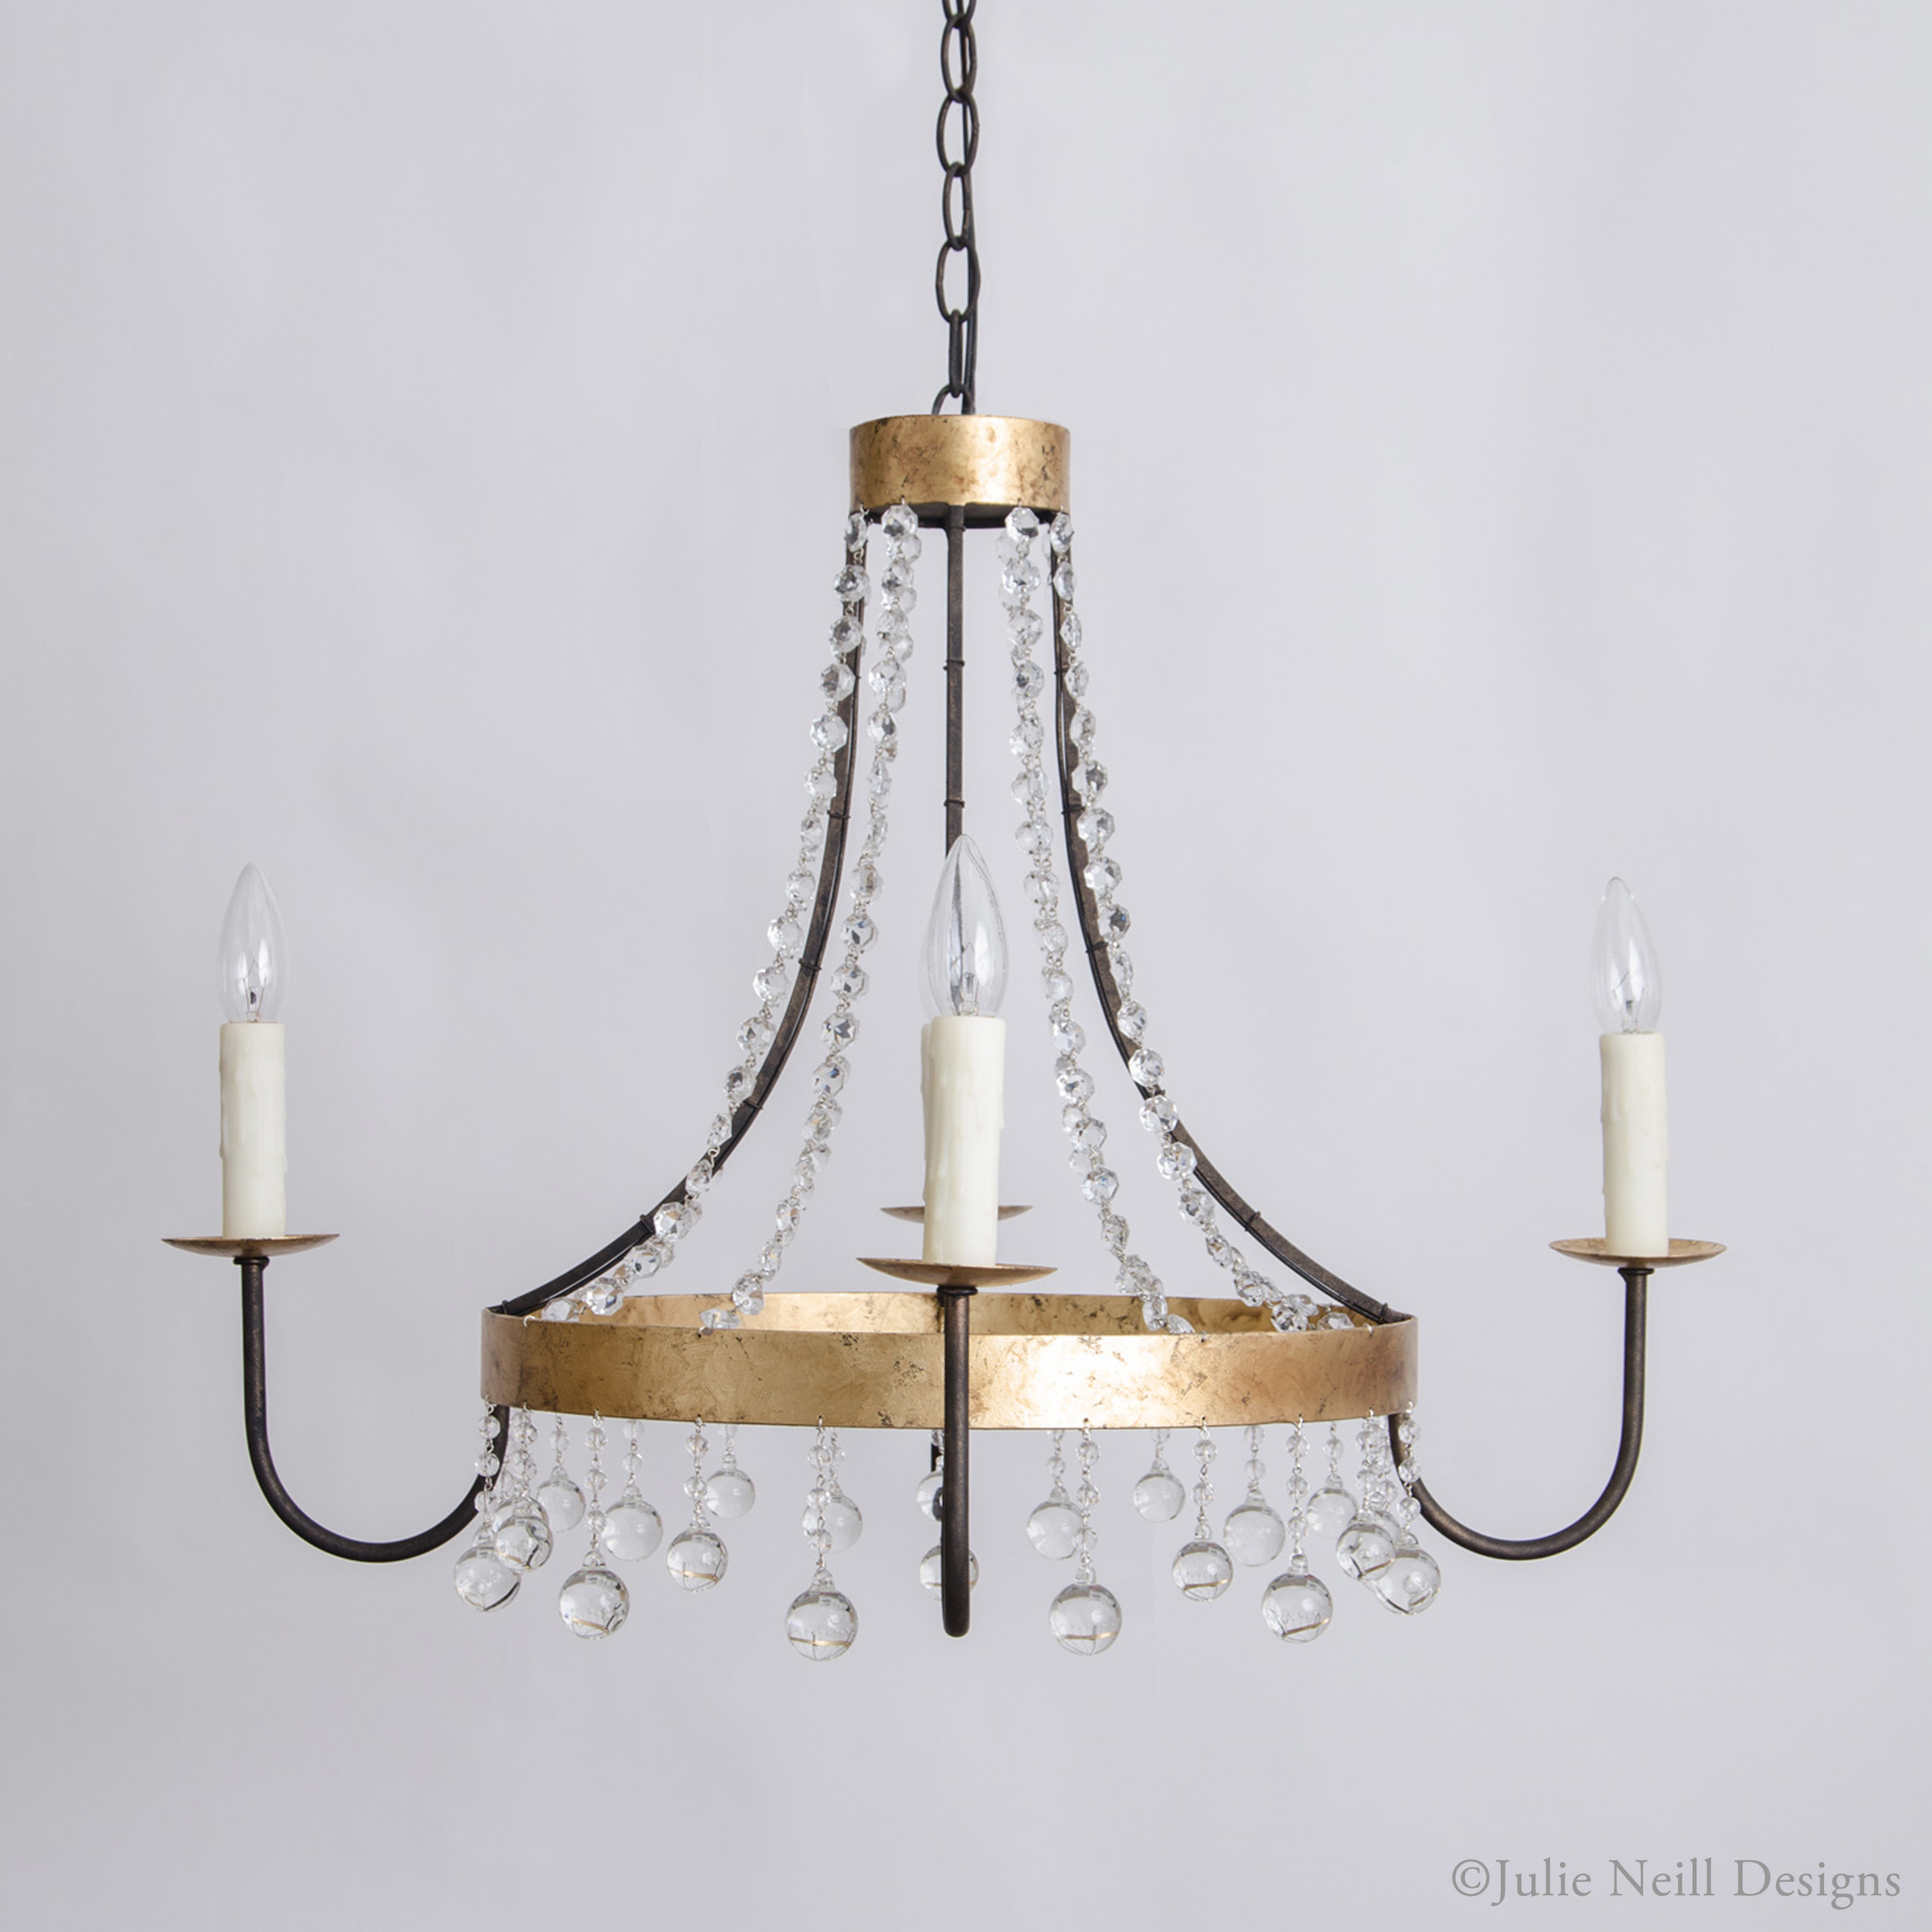 Babette_chandelier_JulieNeillDesigns